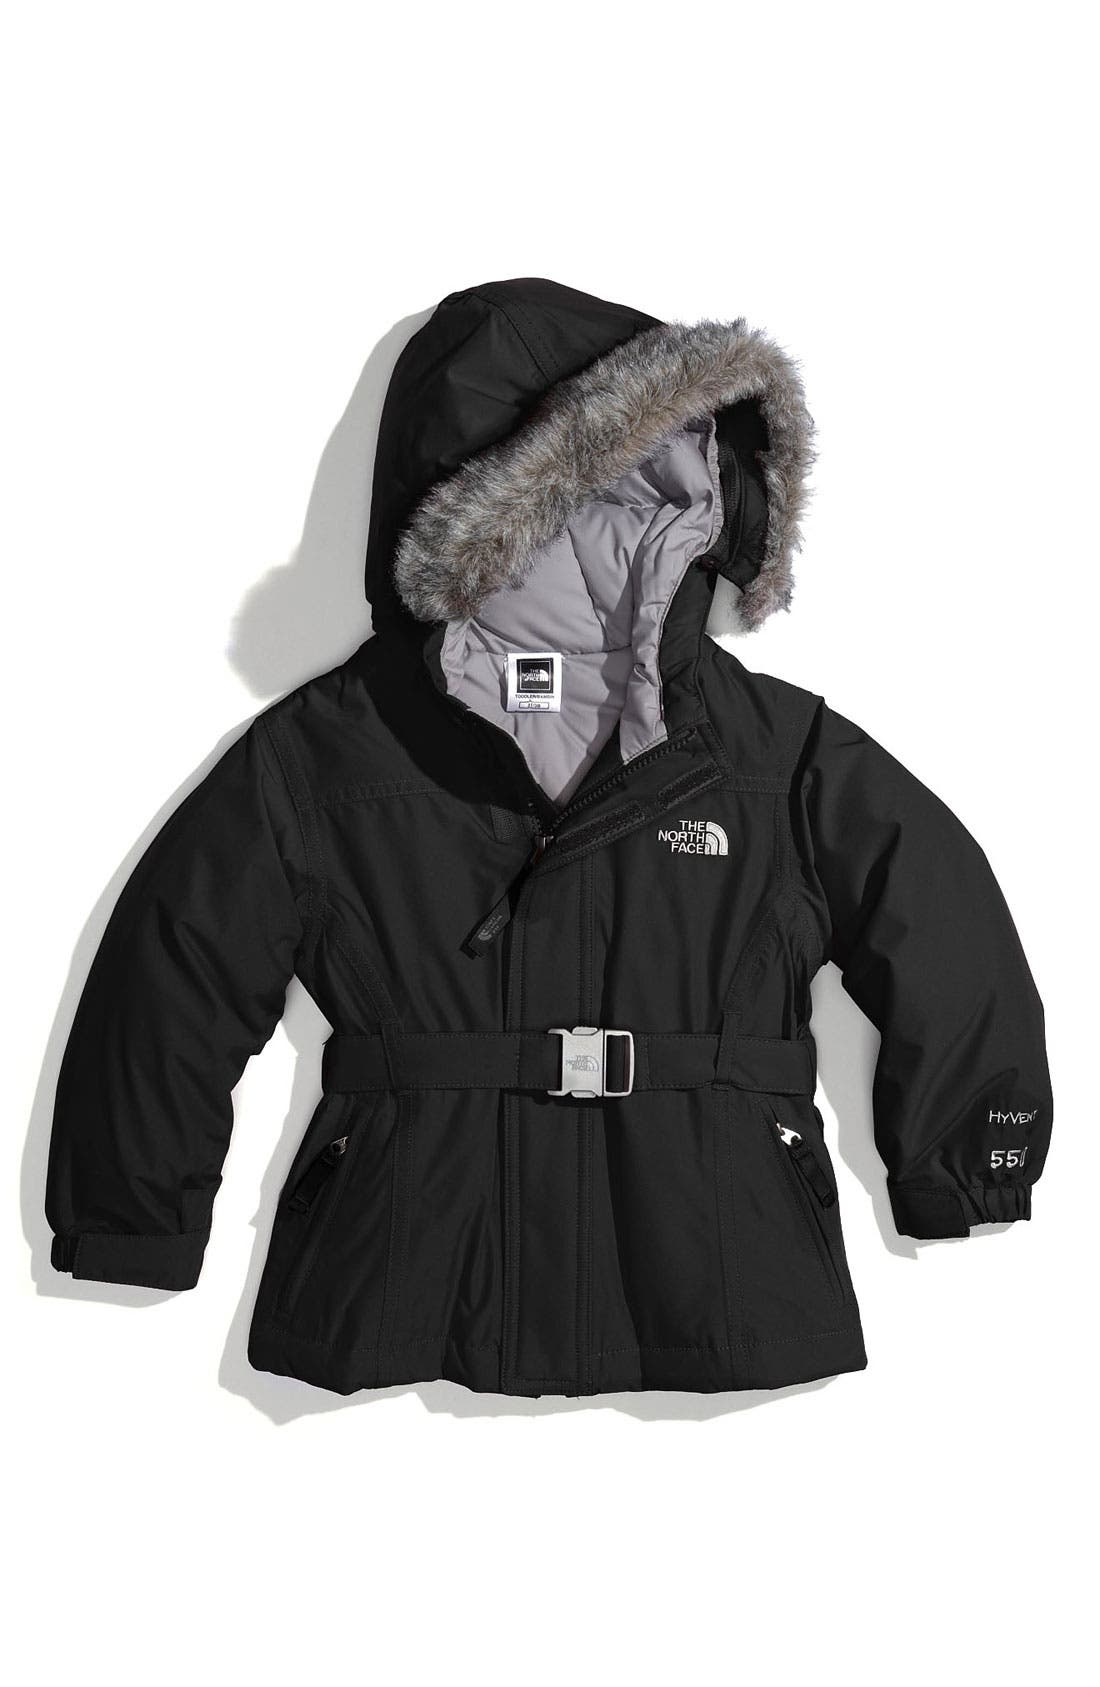 Alternate Image 1 Selected - The North Face 'Greenland' Jacket (Toddler)